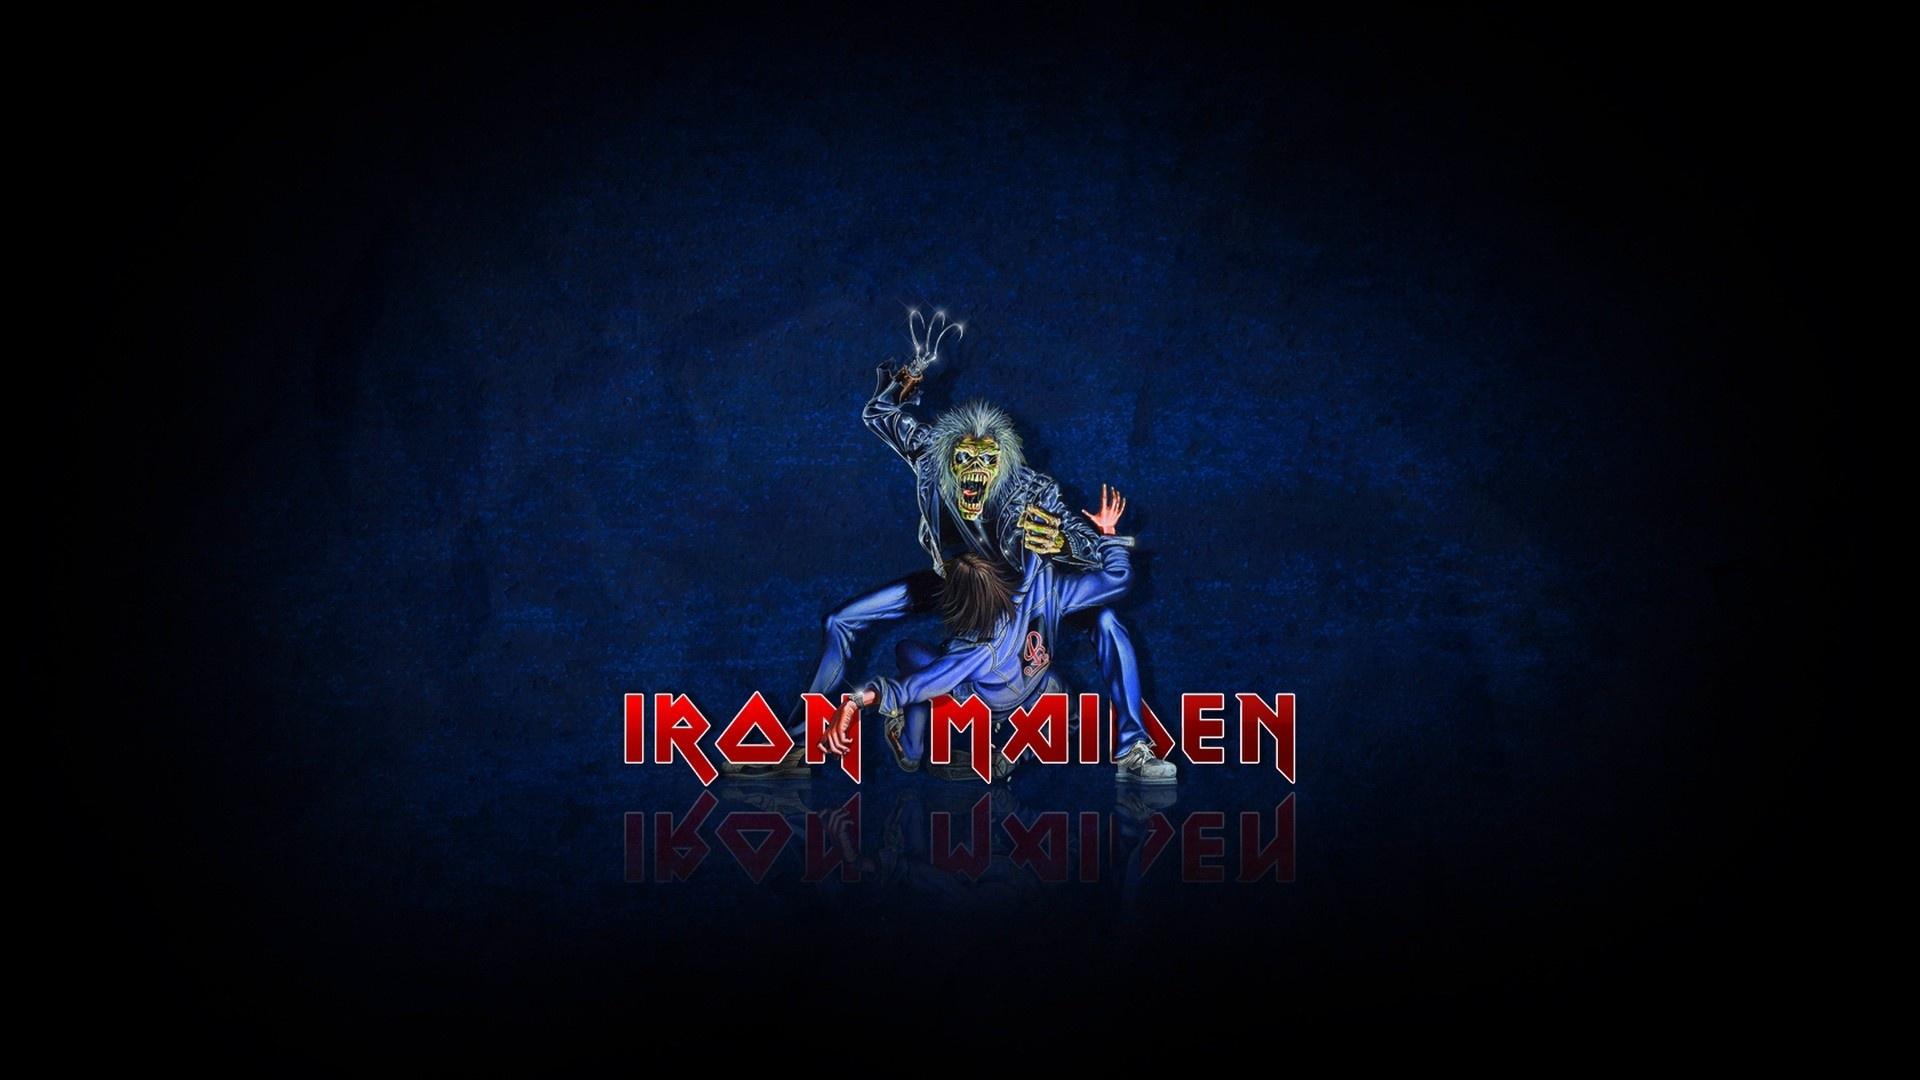 download wallpaper 1920x1080 iron maiden, zombi, victim, darkness